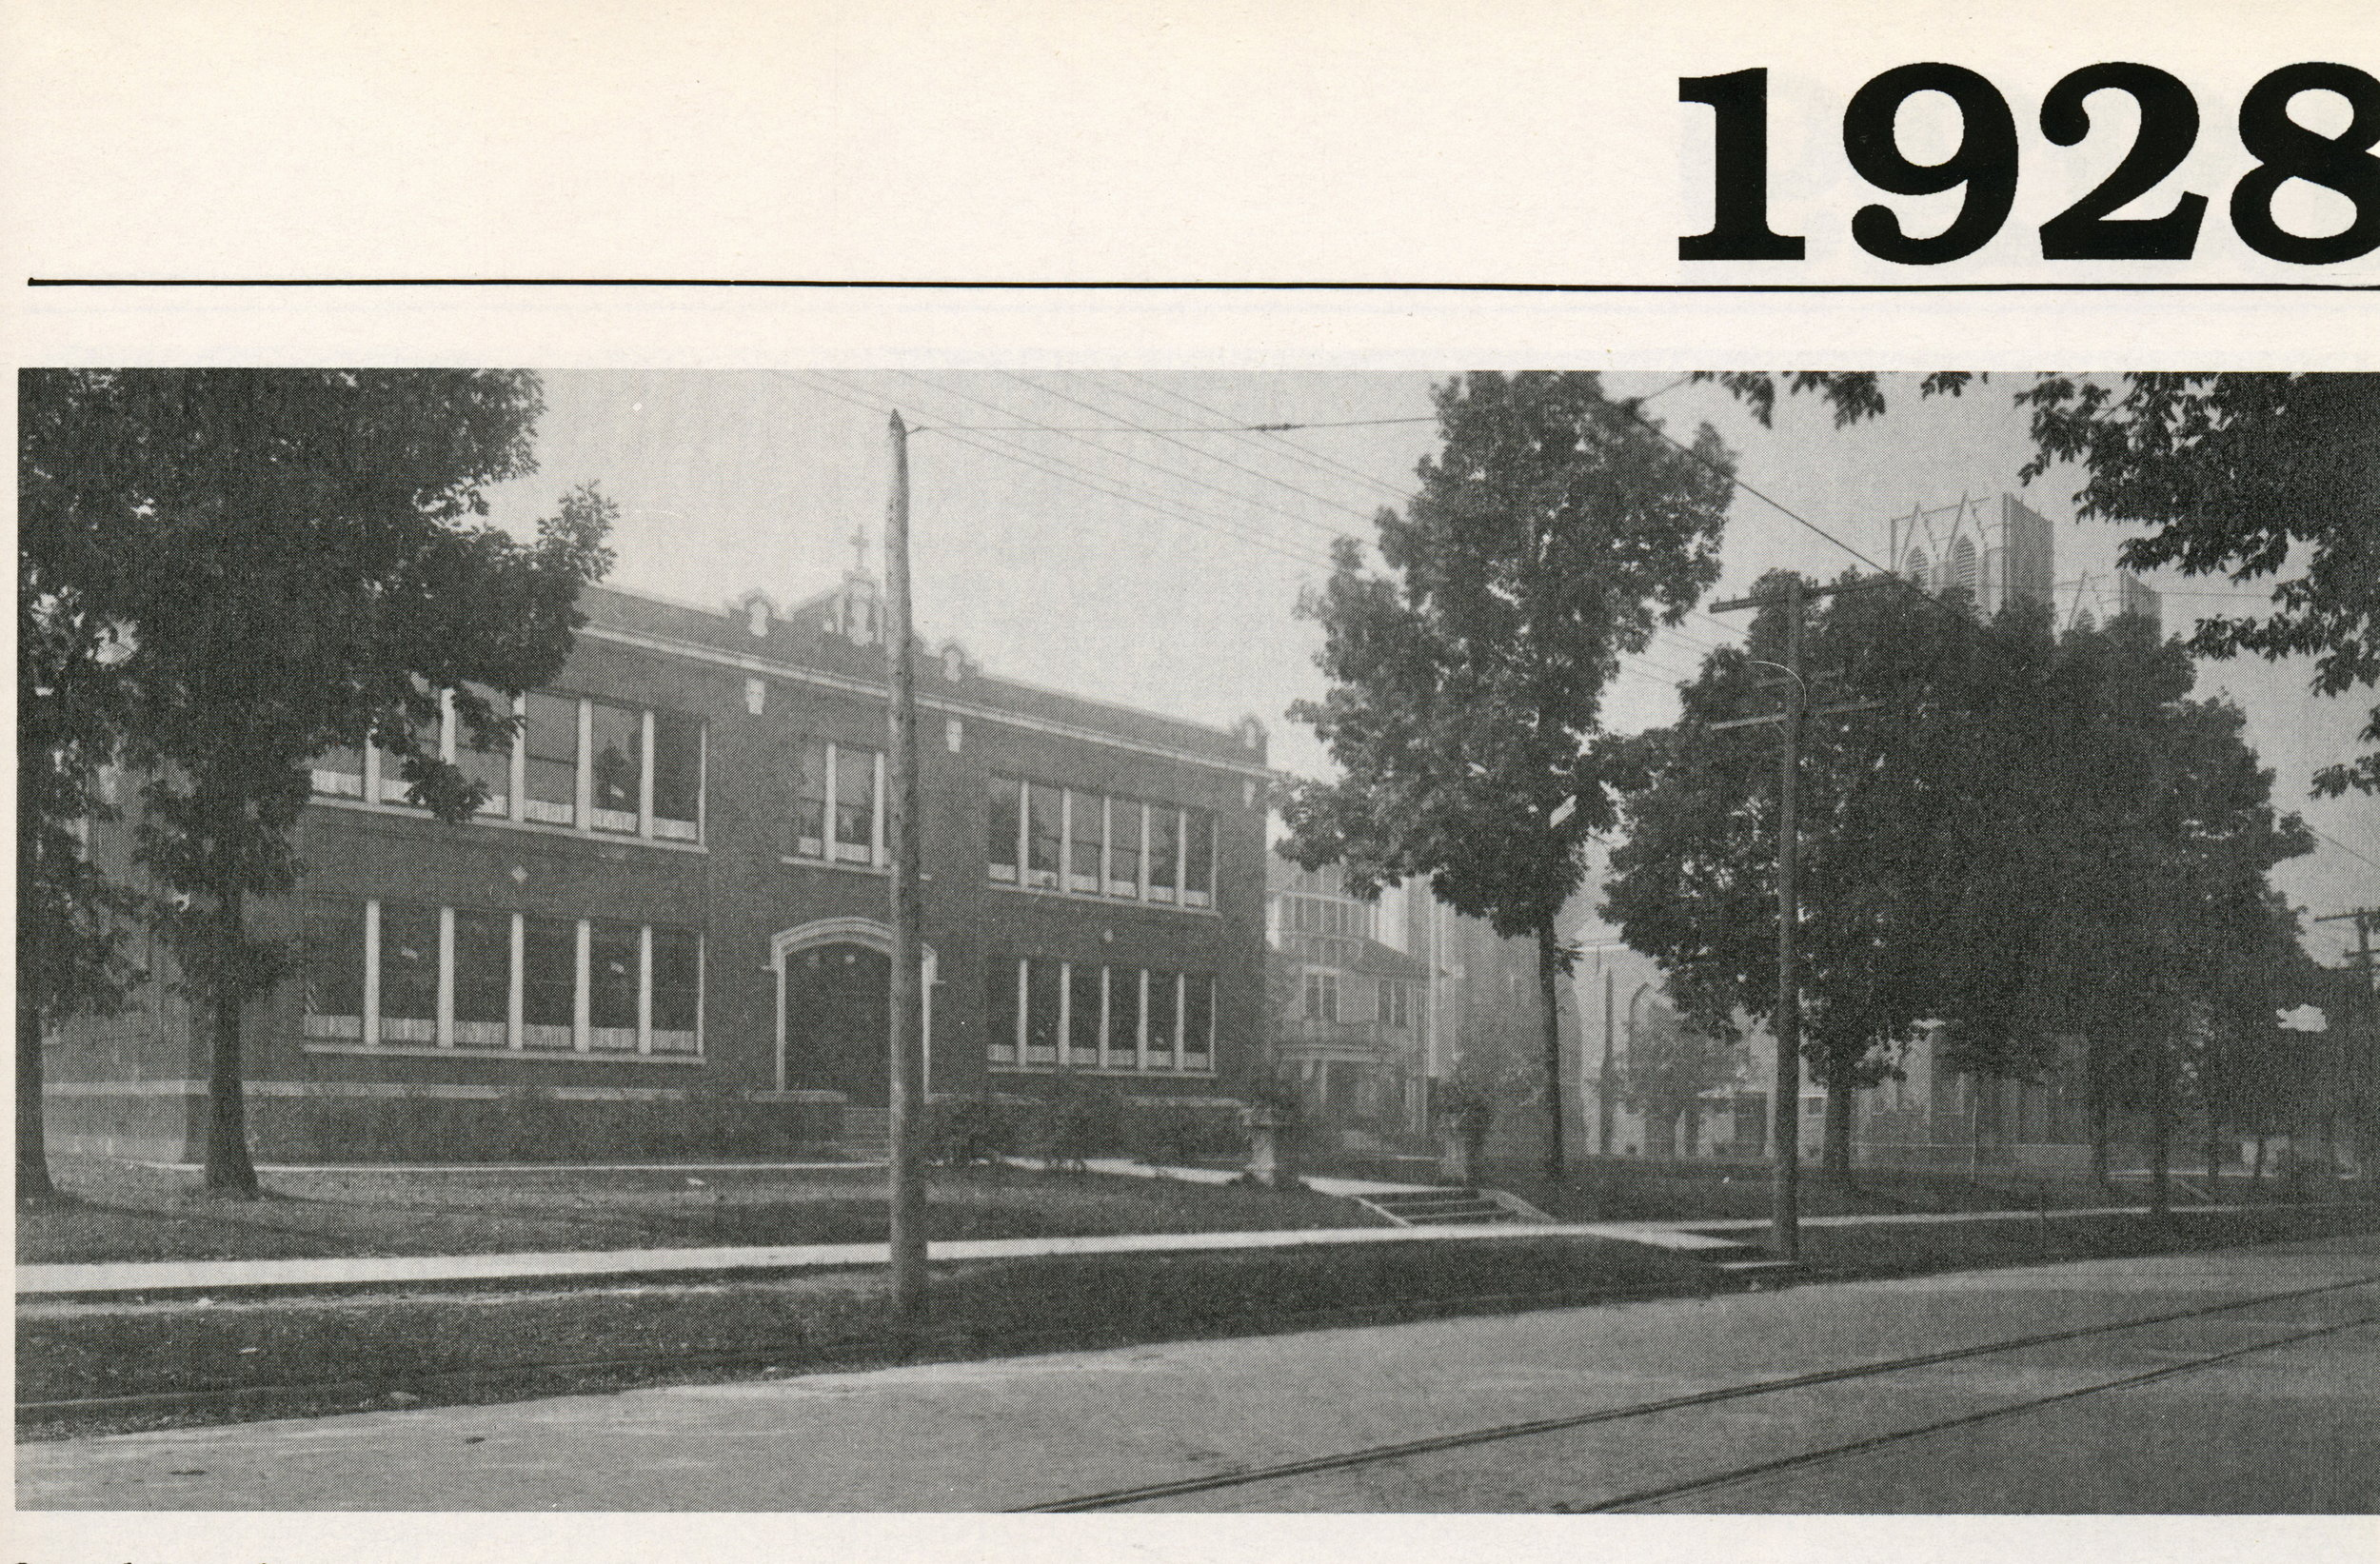 1920s - Two roof fires occurred in the school. January 17th, 1921 and March 21, 1928. A third fire occurred in March 21, 1945, which destroyed part of the school building and parish society meeting places.